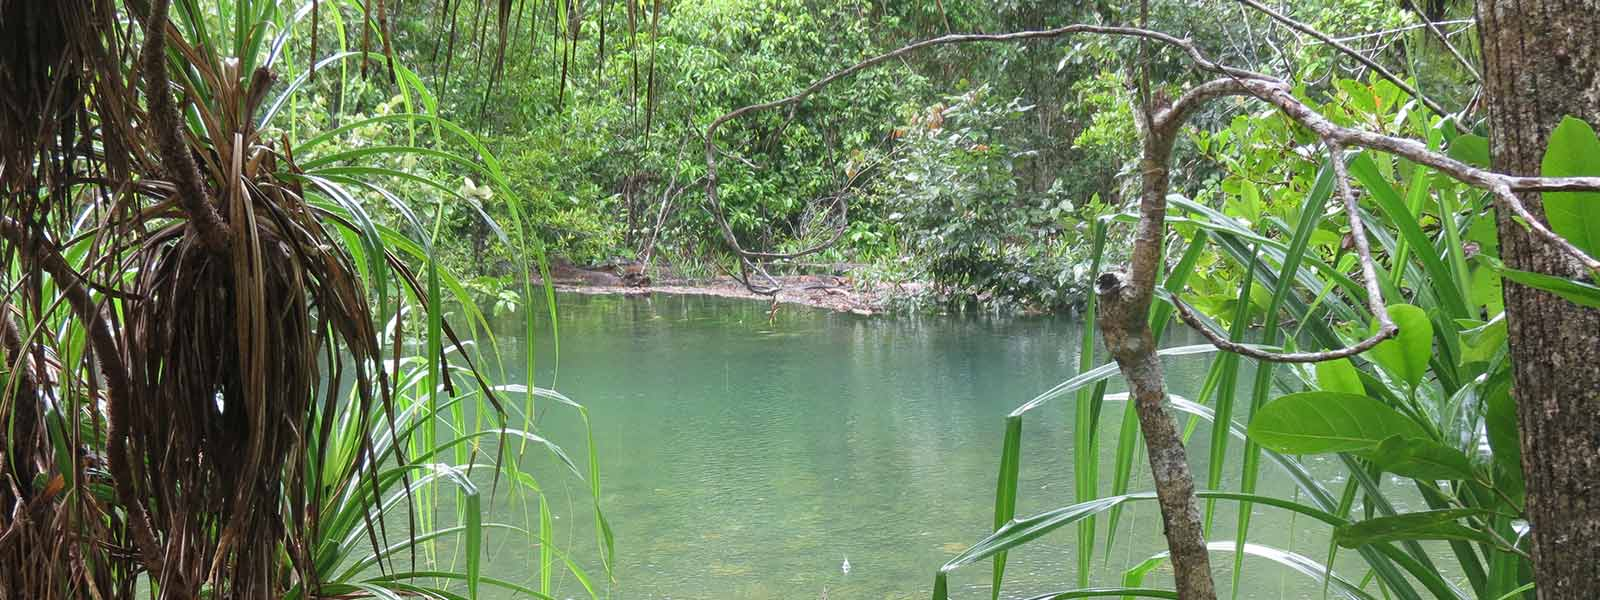 Explore the ancient Daintree Rainforest